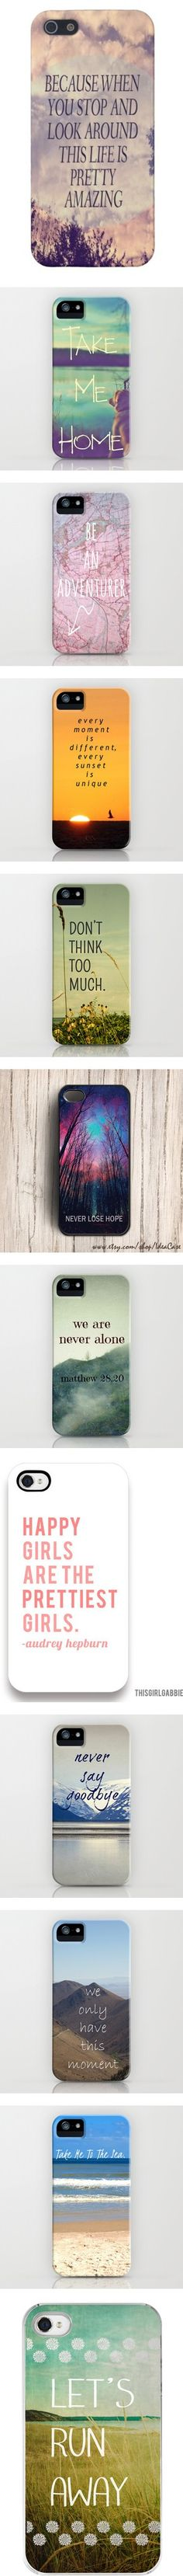 """Hipster Phone Cases"" by i-think-not ❤ liked on Polyvore"